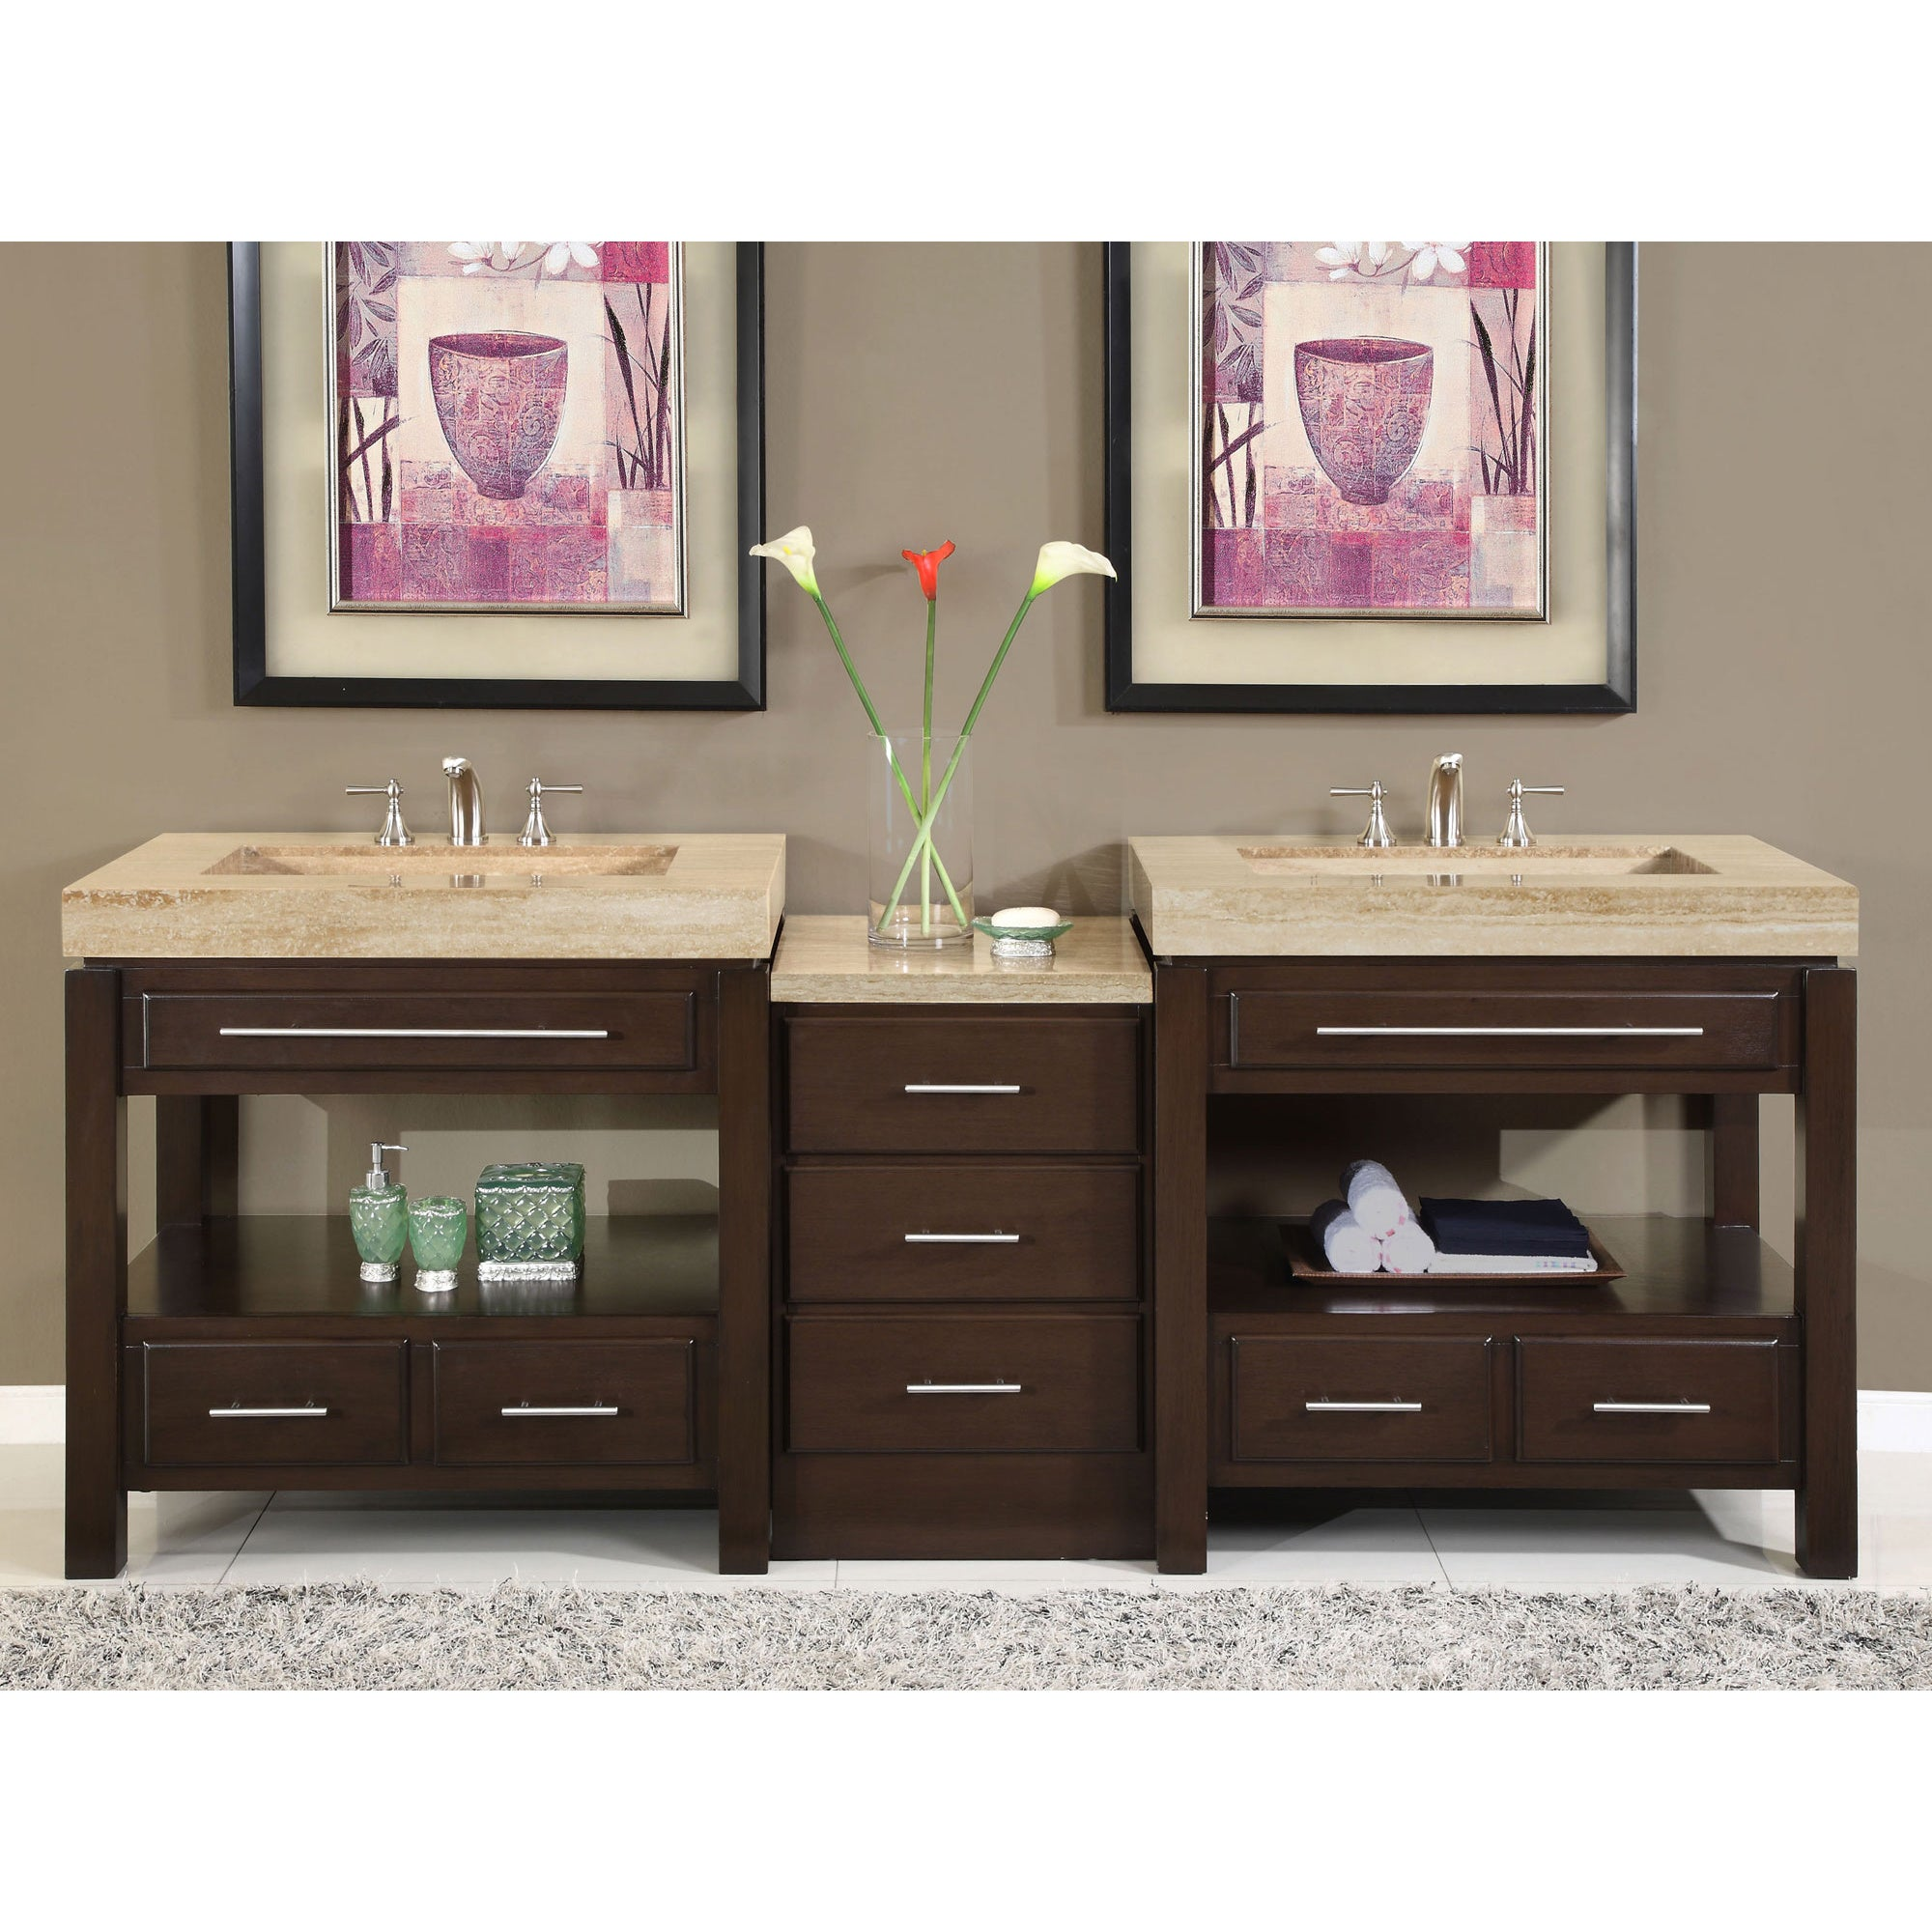 Silkroad Exclusive Travertine Countertop Double Stone Sink Bathroom Vanity Free Shipping Today 6026567